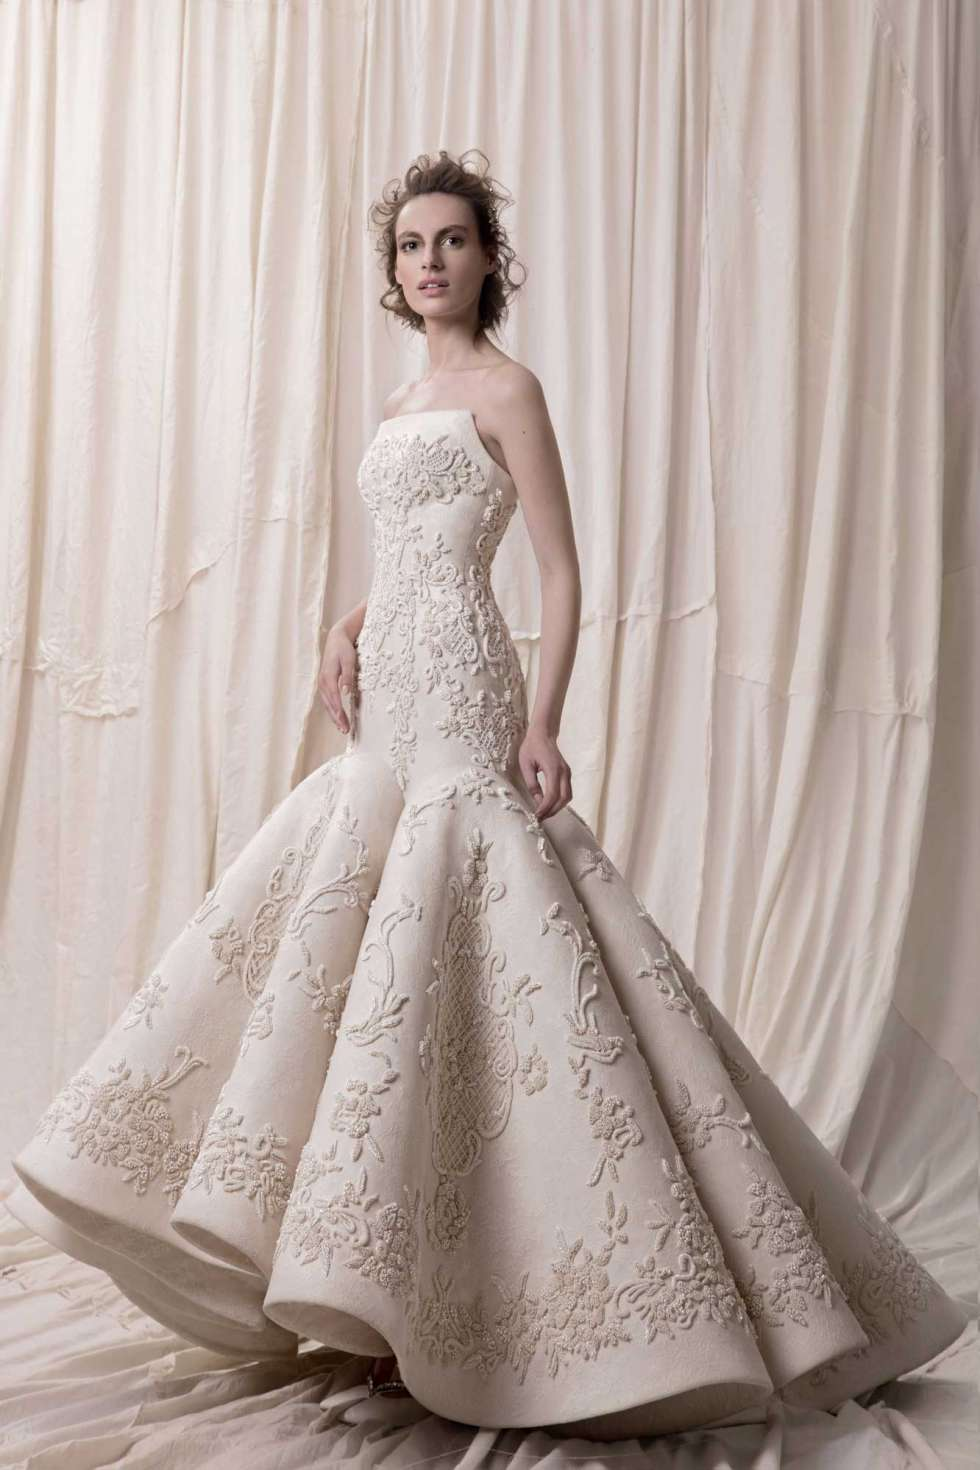 The 2018 Wedding Dress Collection by Krikor Jabotian Arabia Weddings